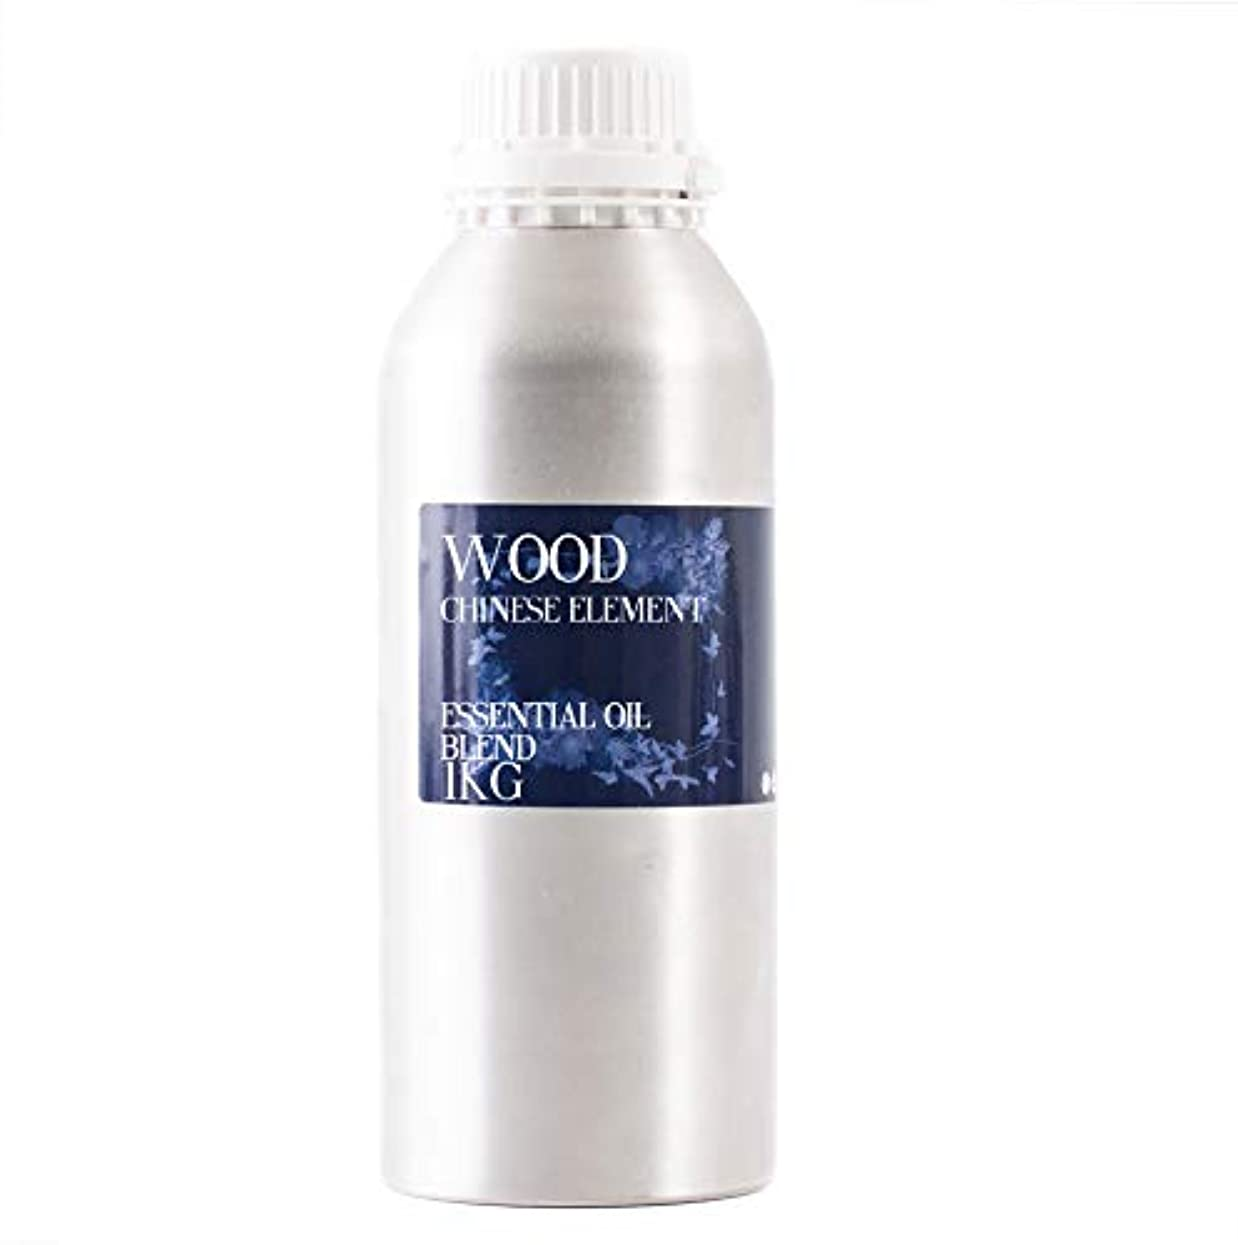 ダイヤモンド塩支出Mystix London | Chinese Wood Element Essential Oil Blend - 1Kg